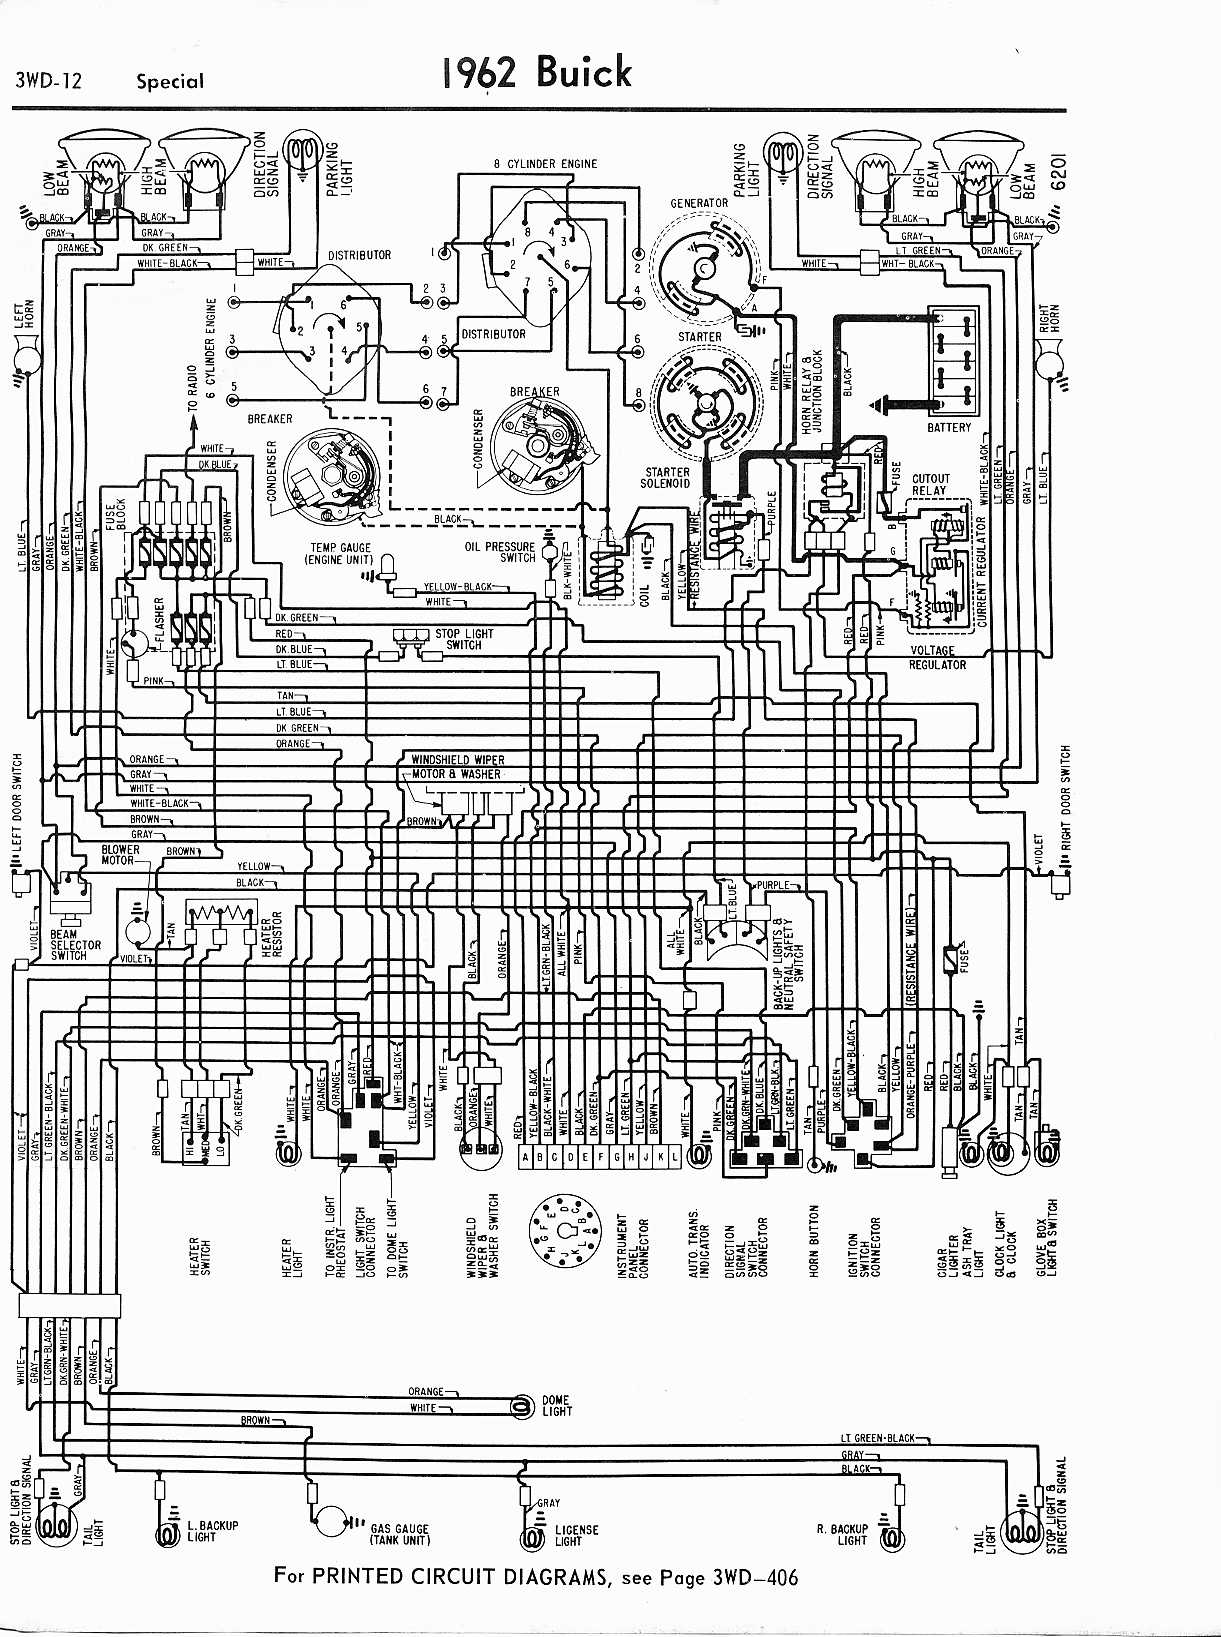 hight resolution of buick 455 wiring diagram simple wiring schema 72 olds 442 1972 buick 455 wiring diagram simple